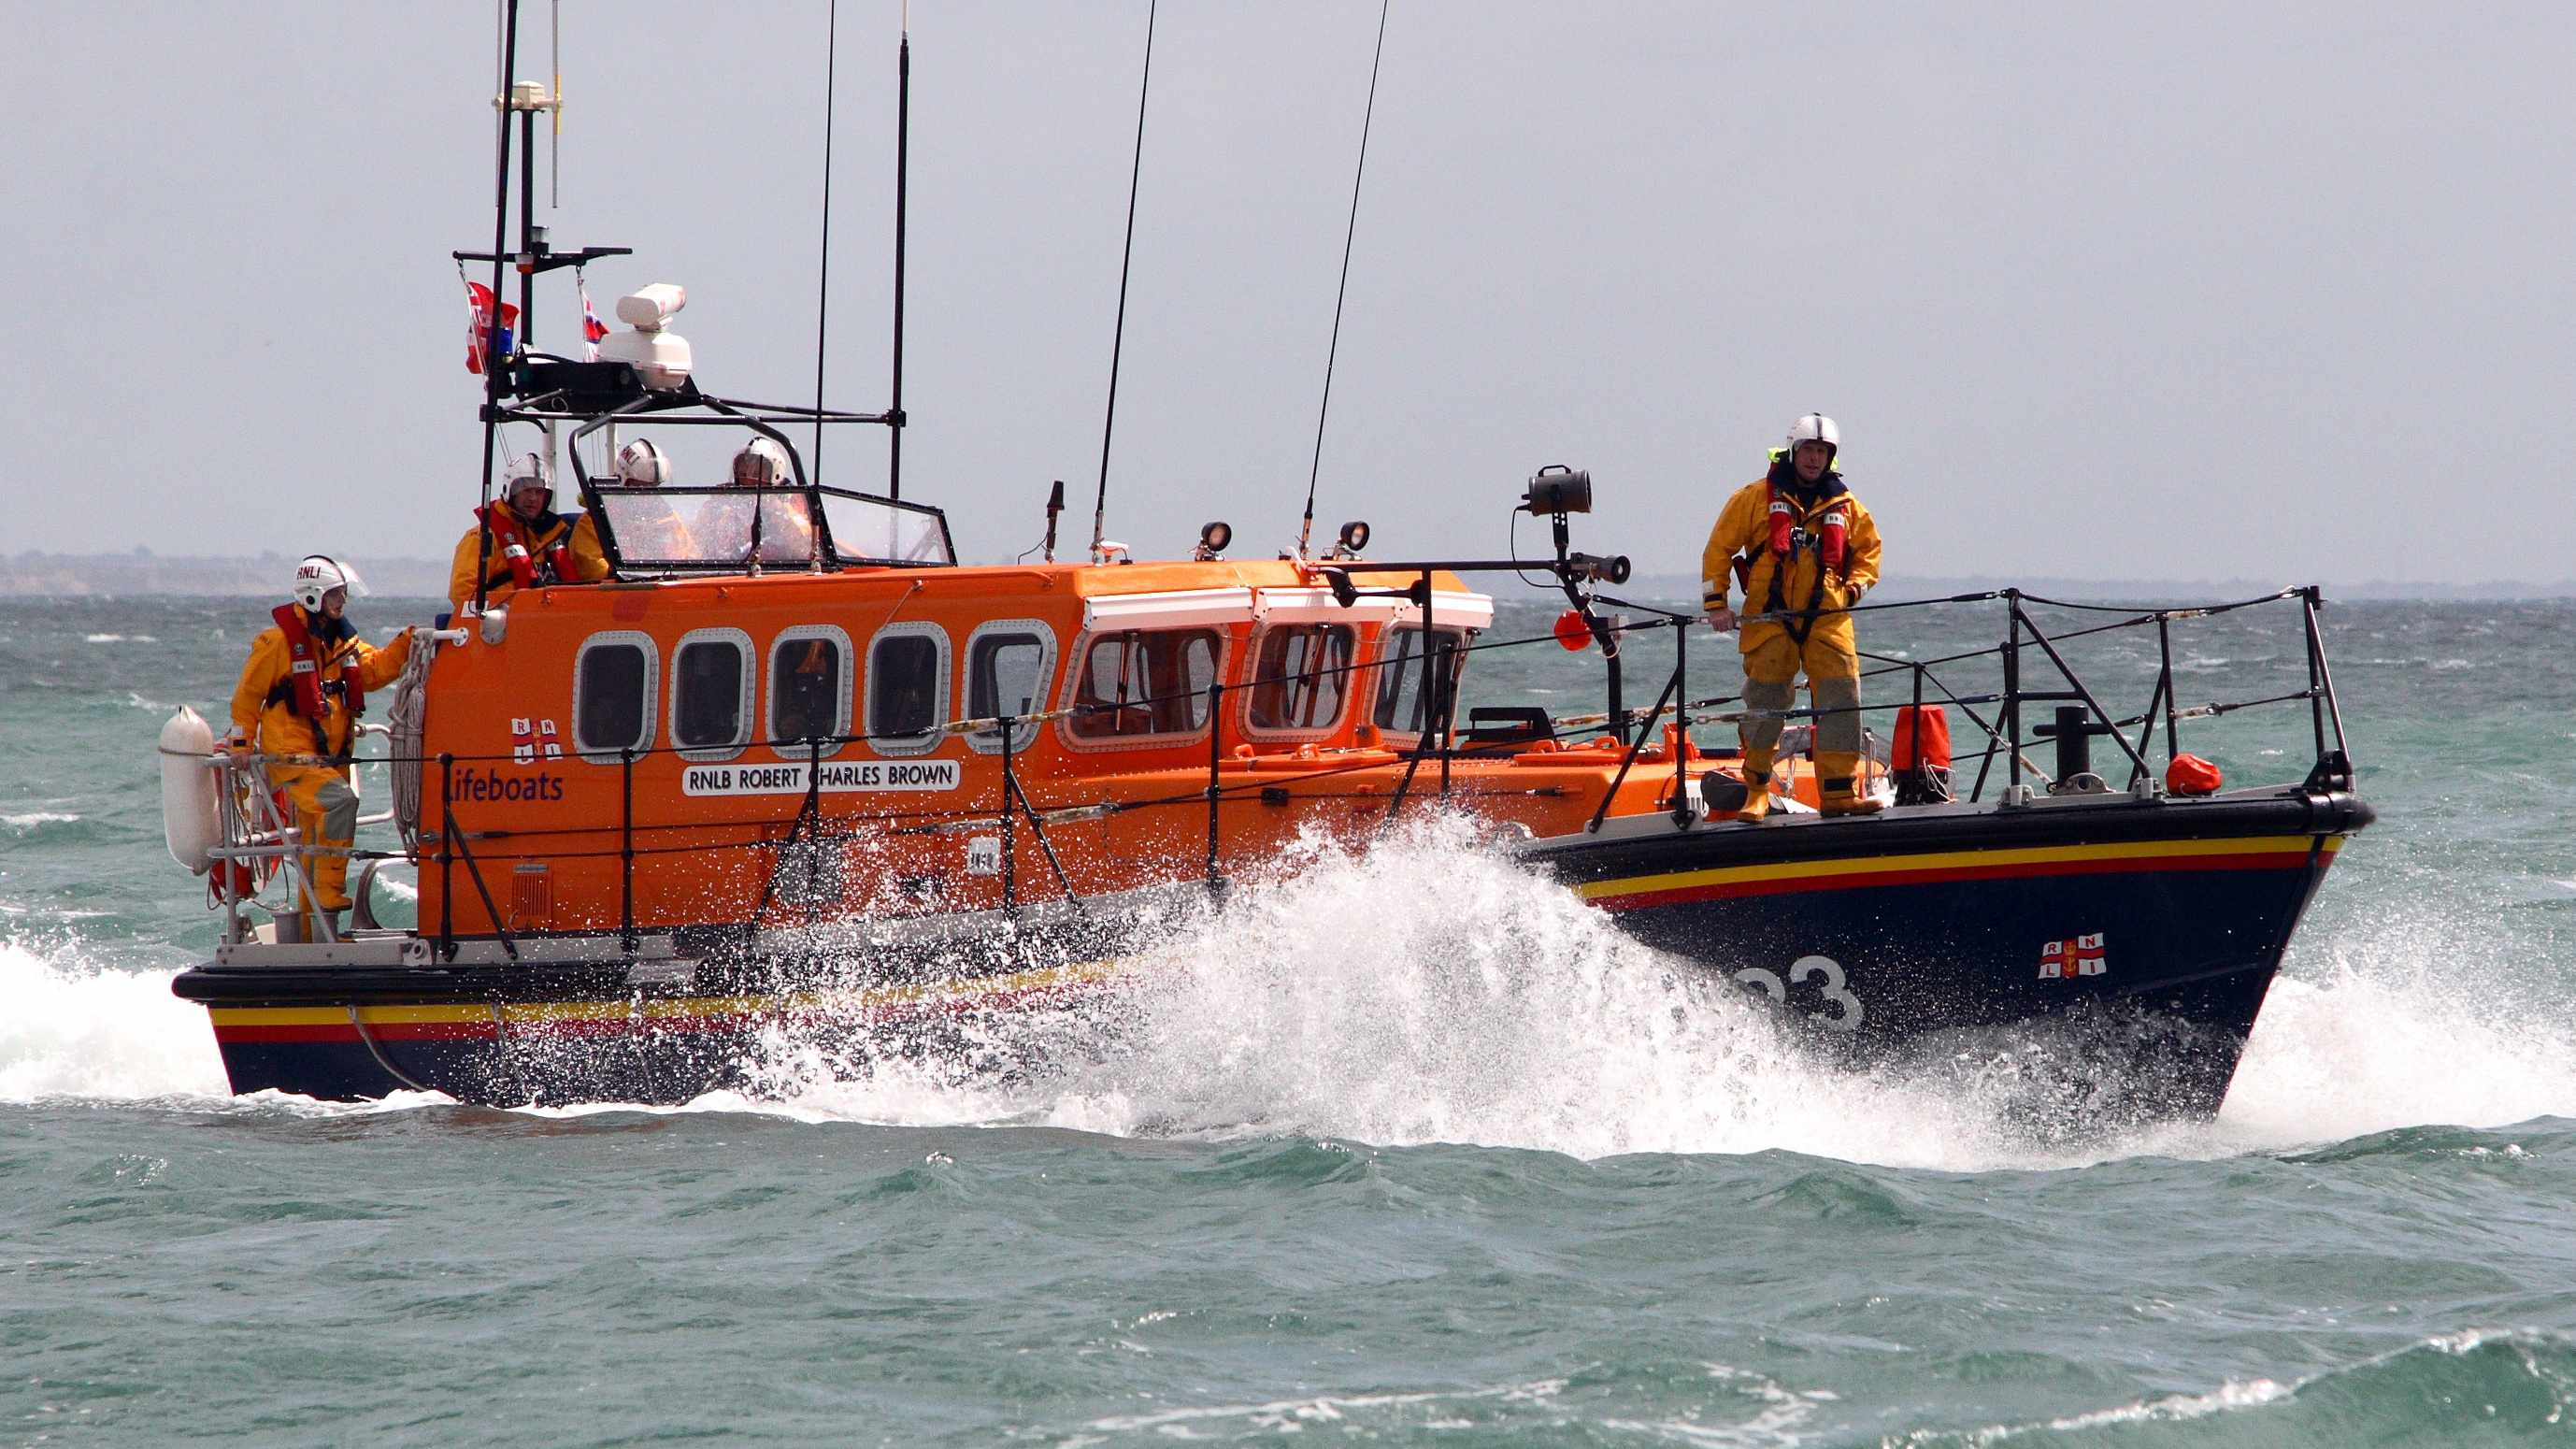 Baltimore RNLI called to medical evacuataion off West Cork island